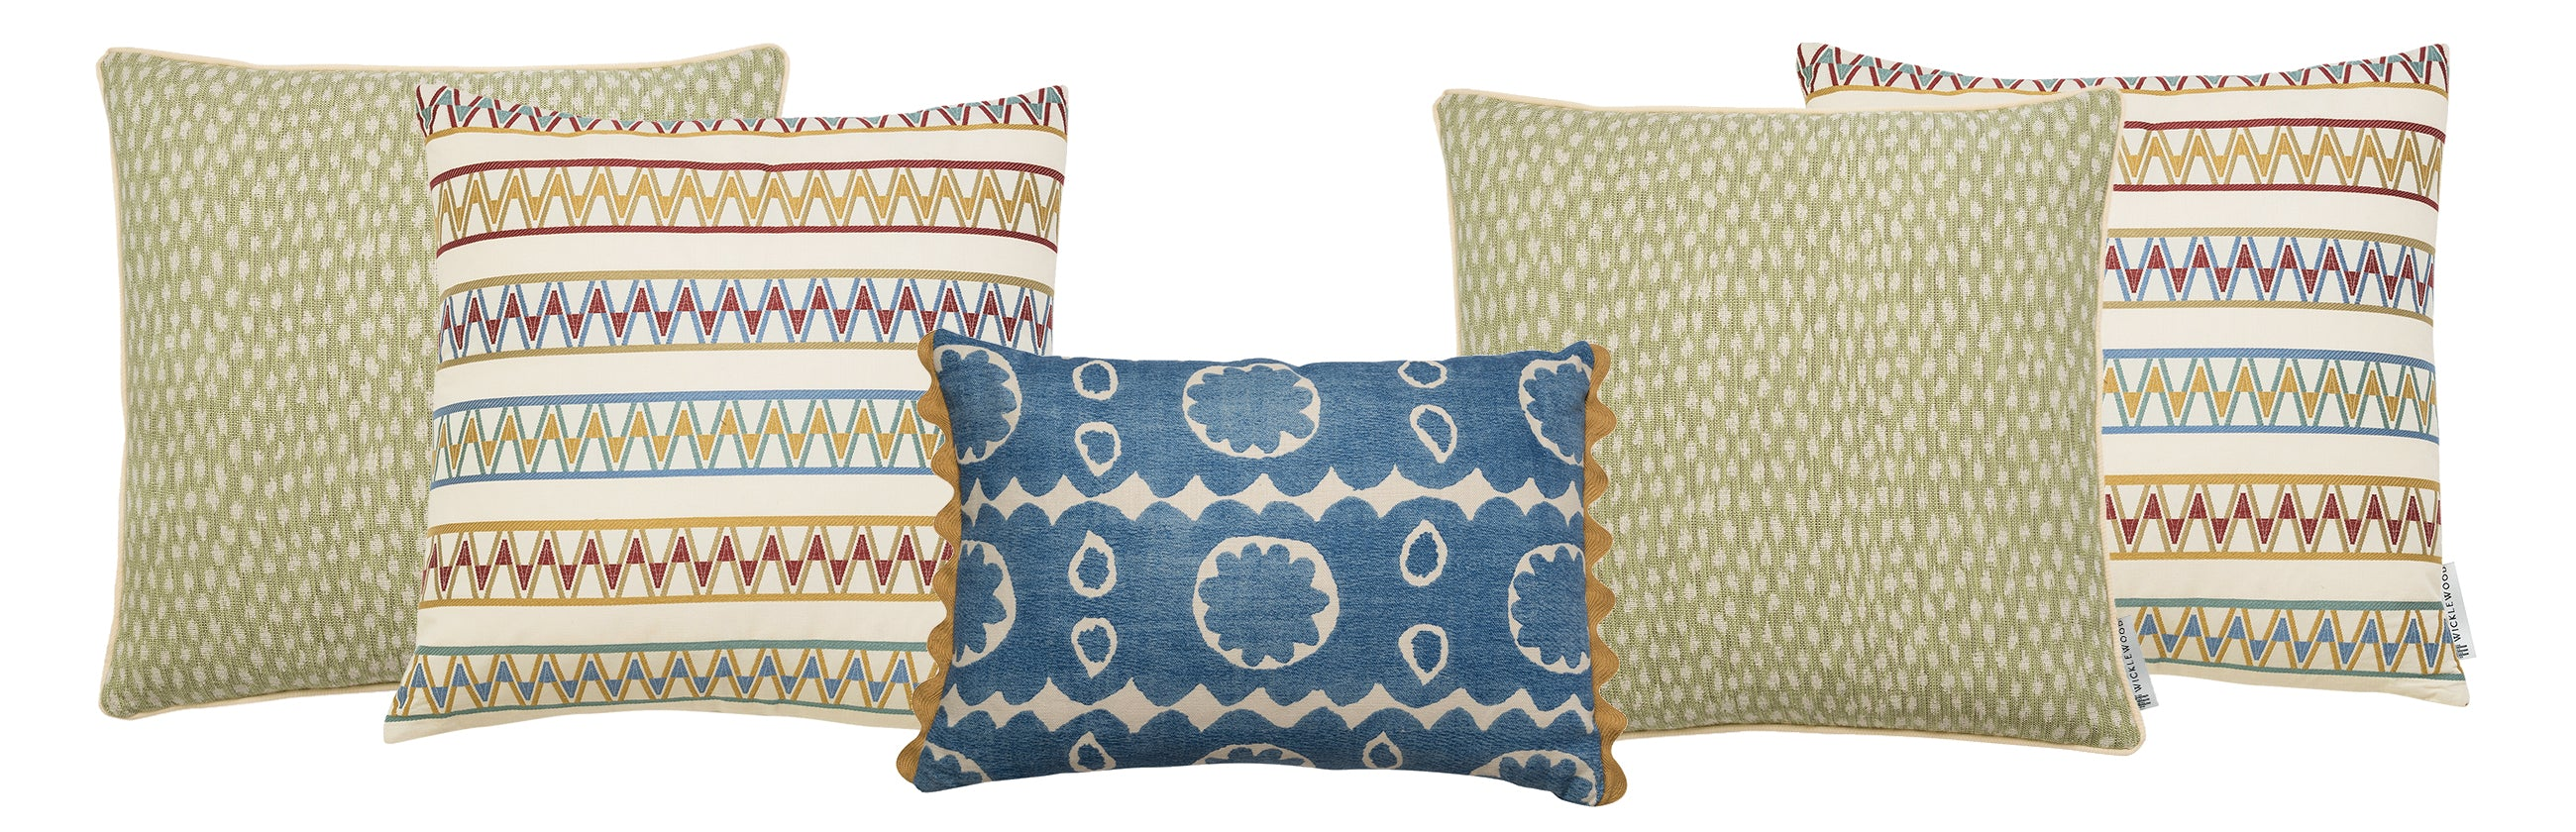 Wicklewood's Spring Cushion Sets, a pre-styled set of 3 square and oblong colourful throw cushions to instantly brighten up your home this season